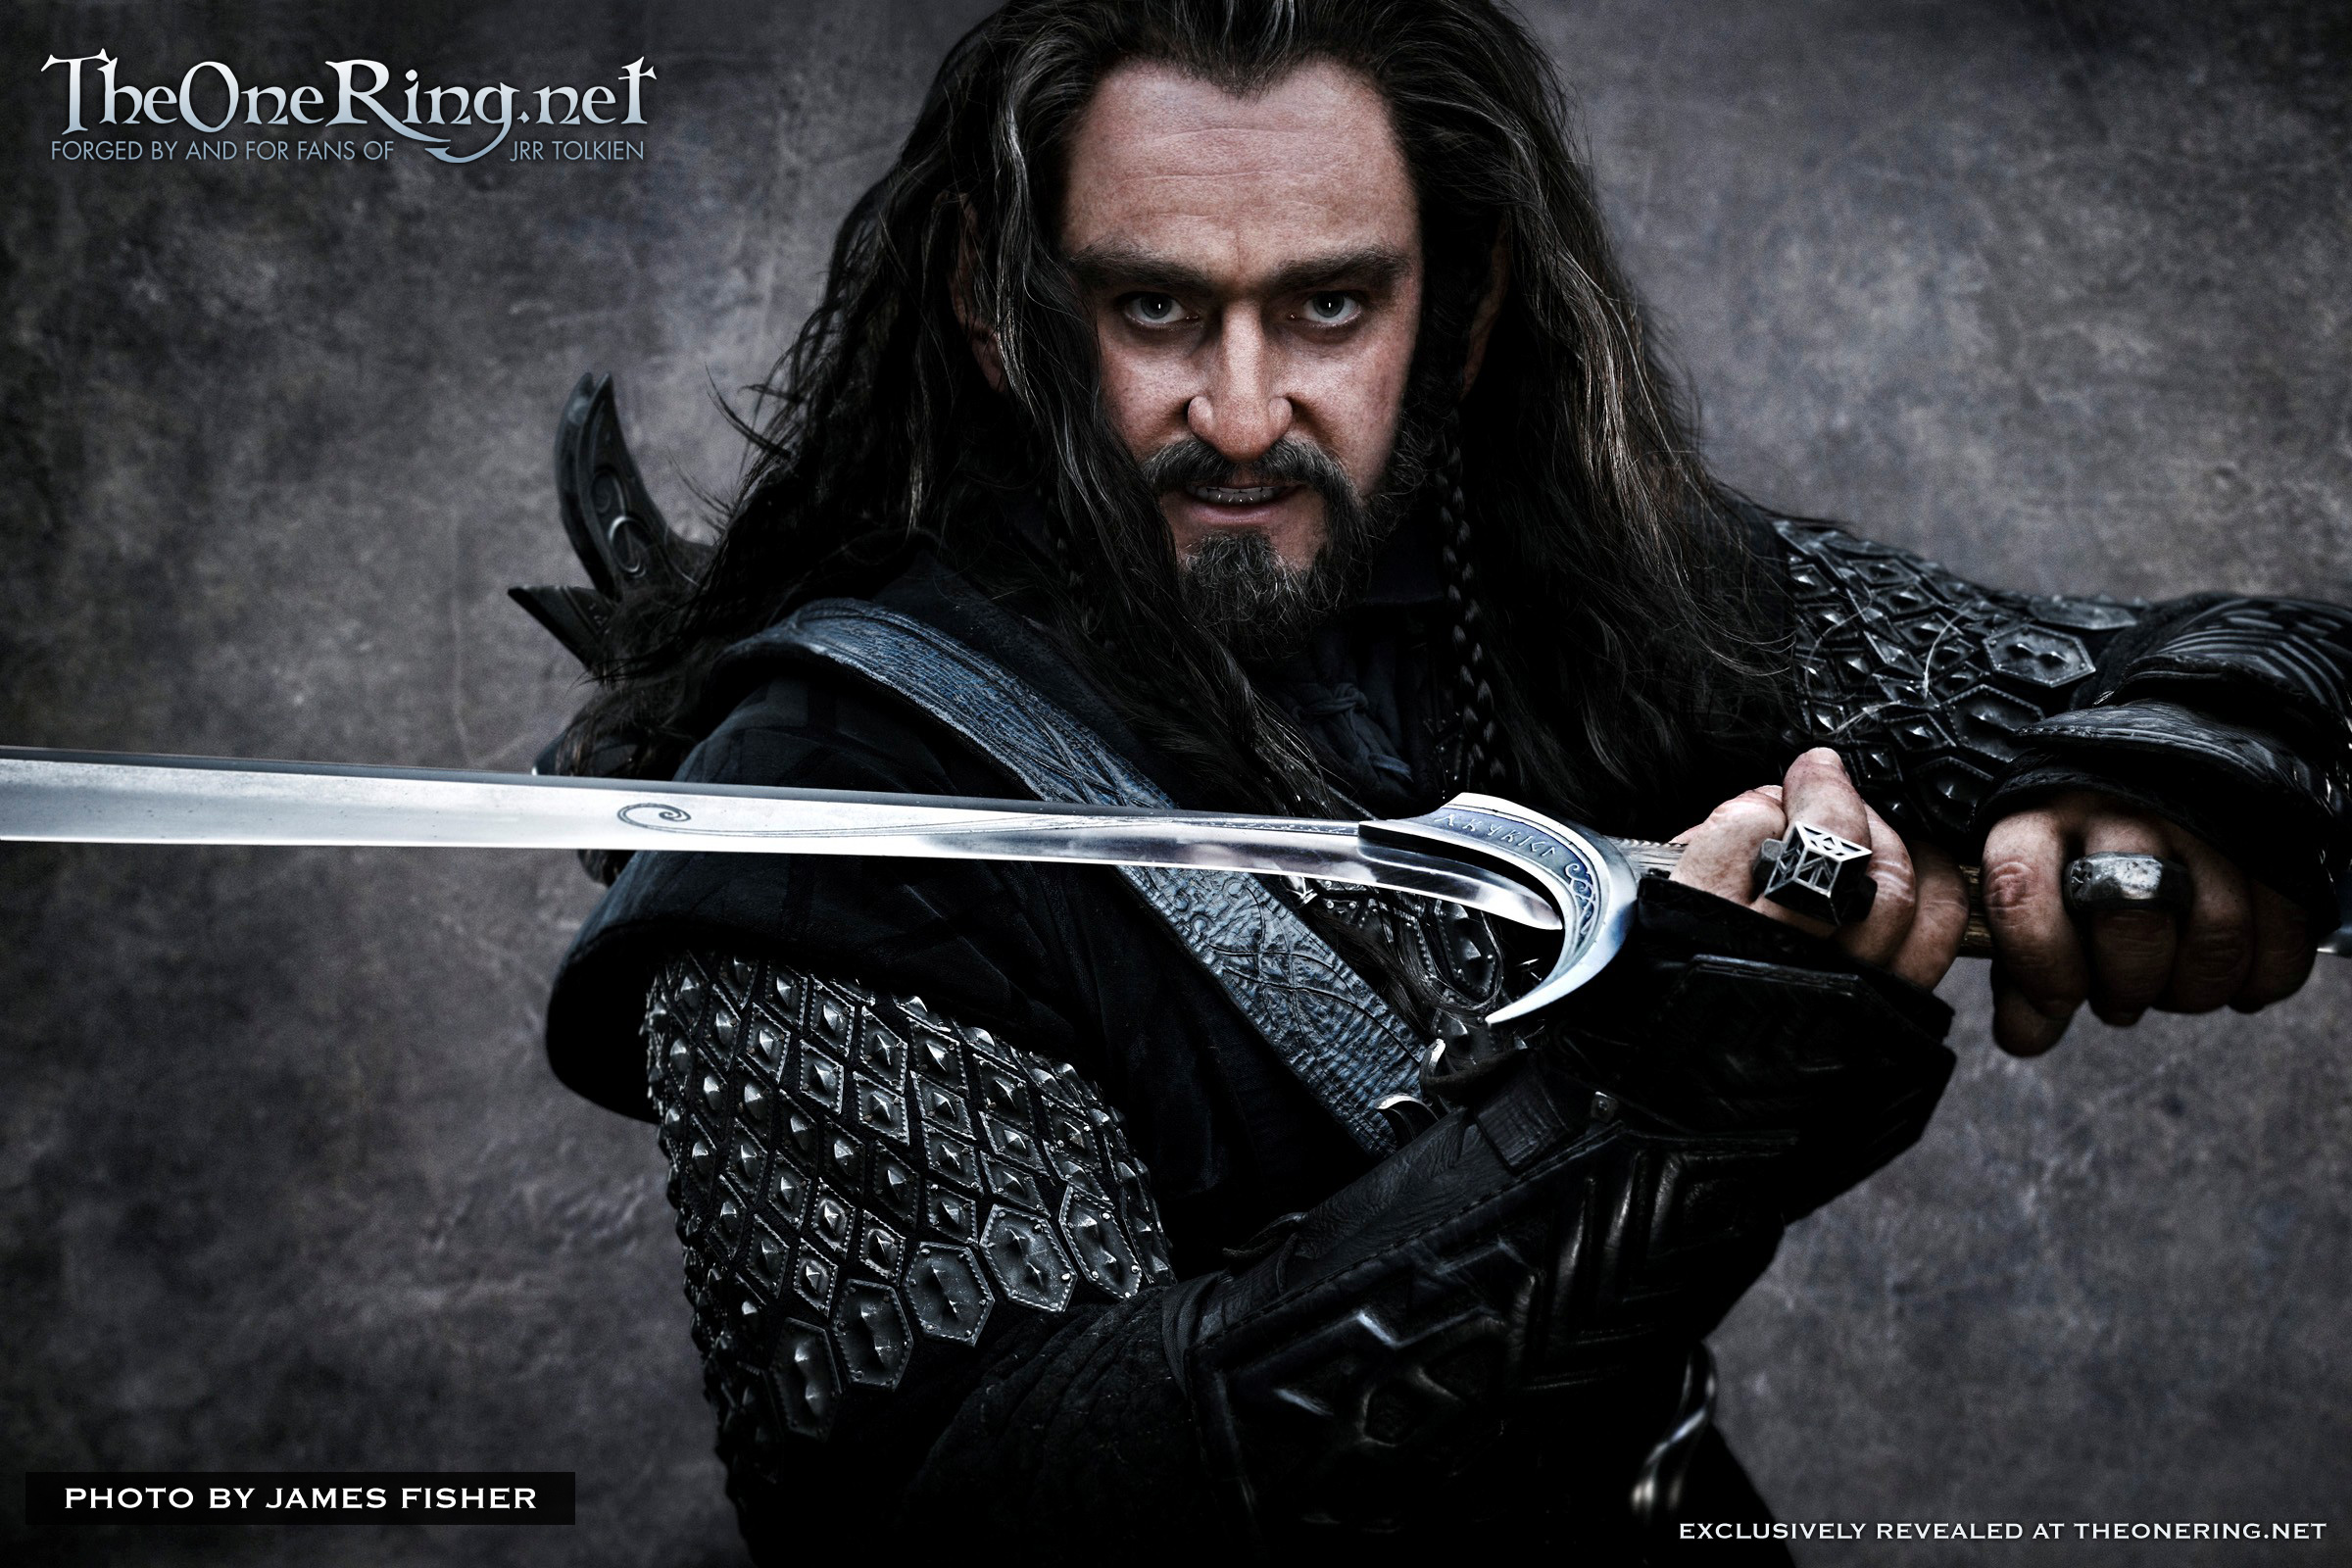 www-images.theonering.org/torwp/wp-content/uploads/2011/07/thorin-richardarmitage.jpg